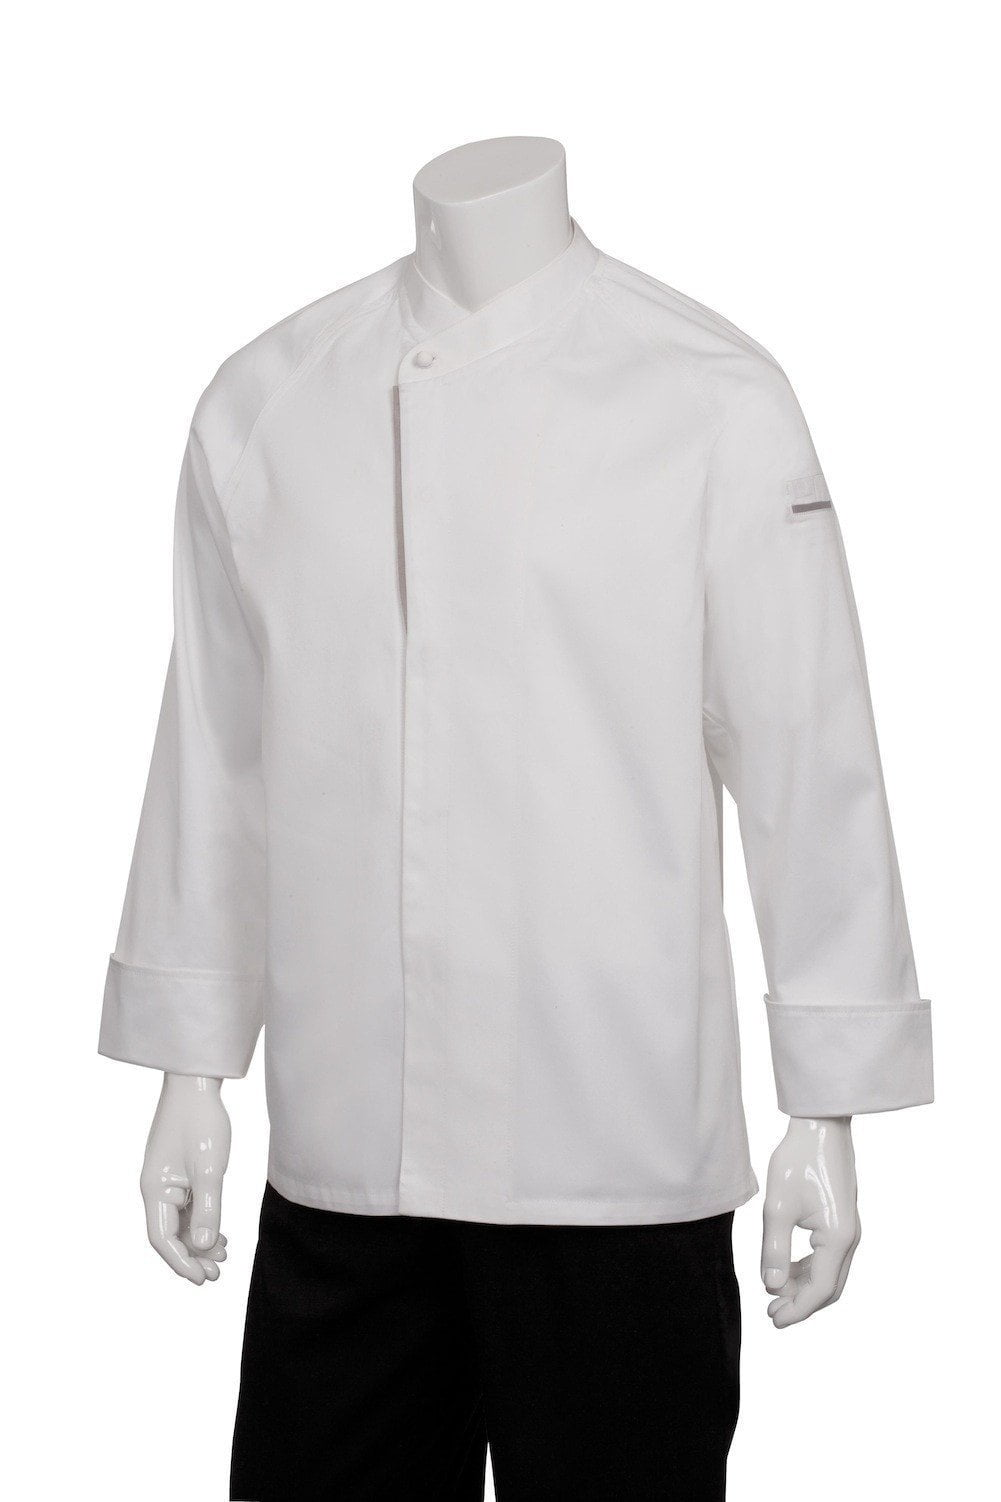 Trieste Premium Cotton Chef Coat by Chef Works White Front